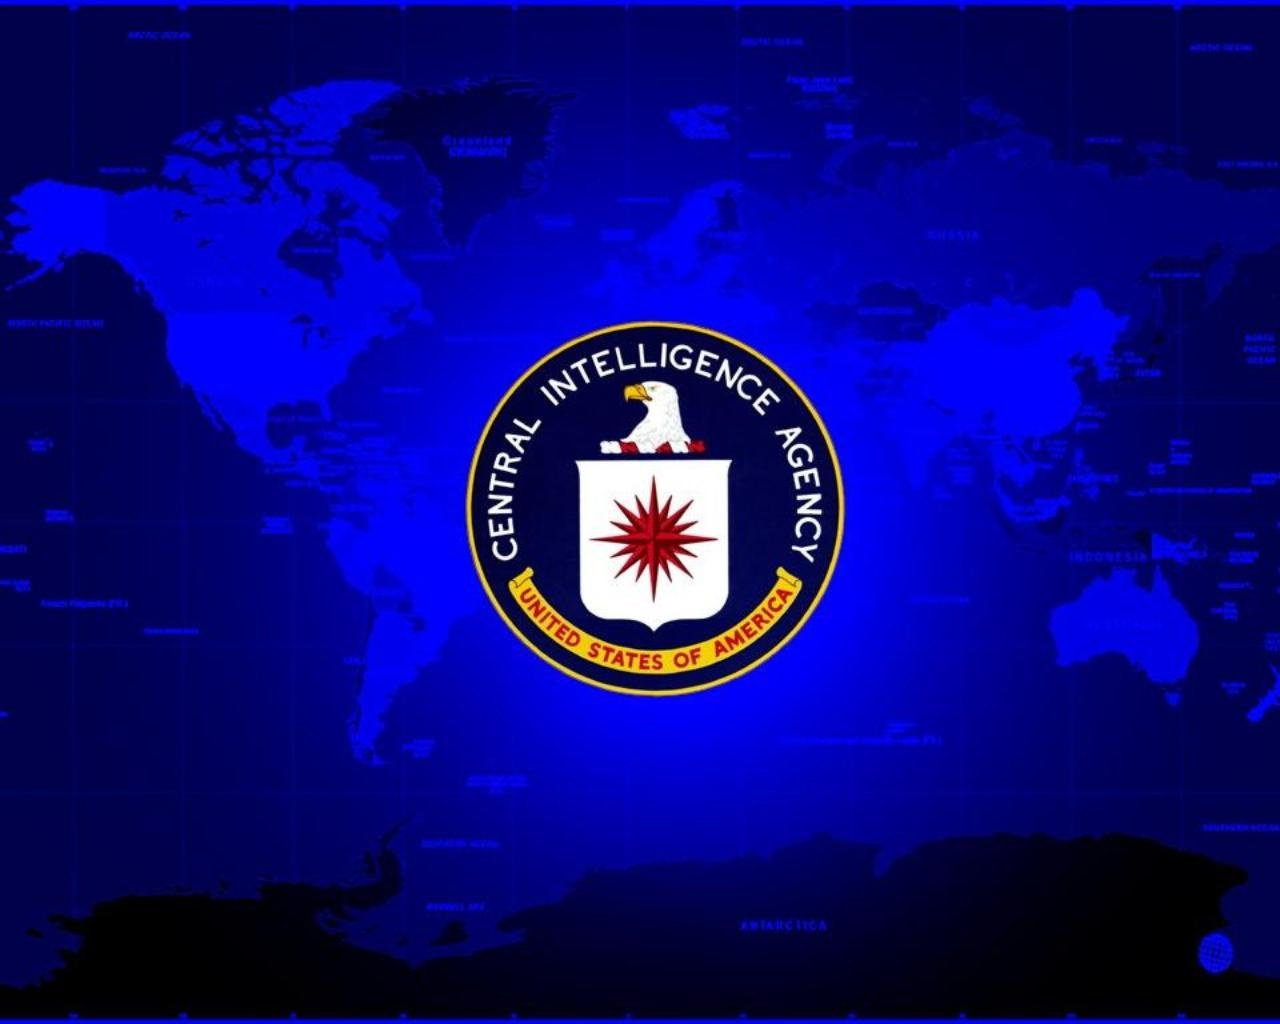 Central Intelligence Agency US | 1280 x 1024 | Download | Close